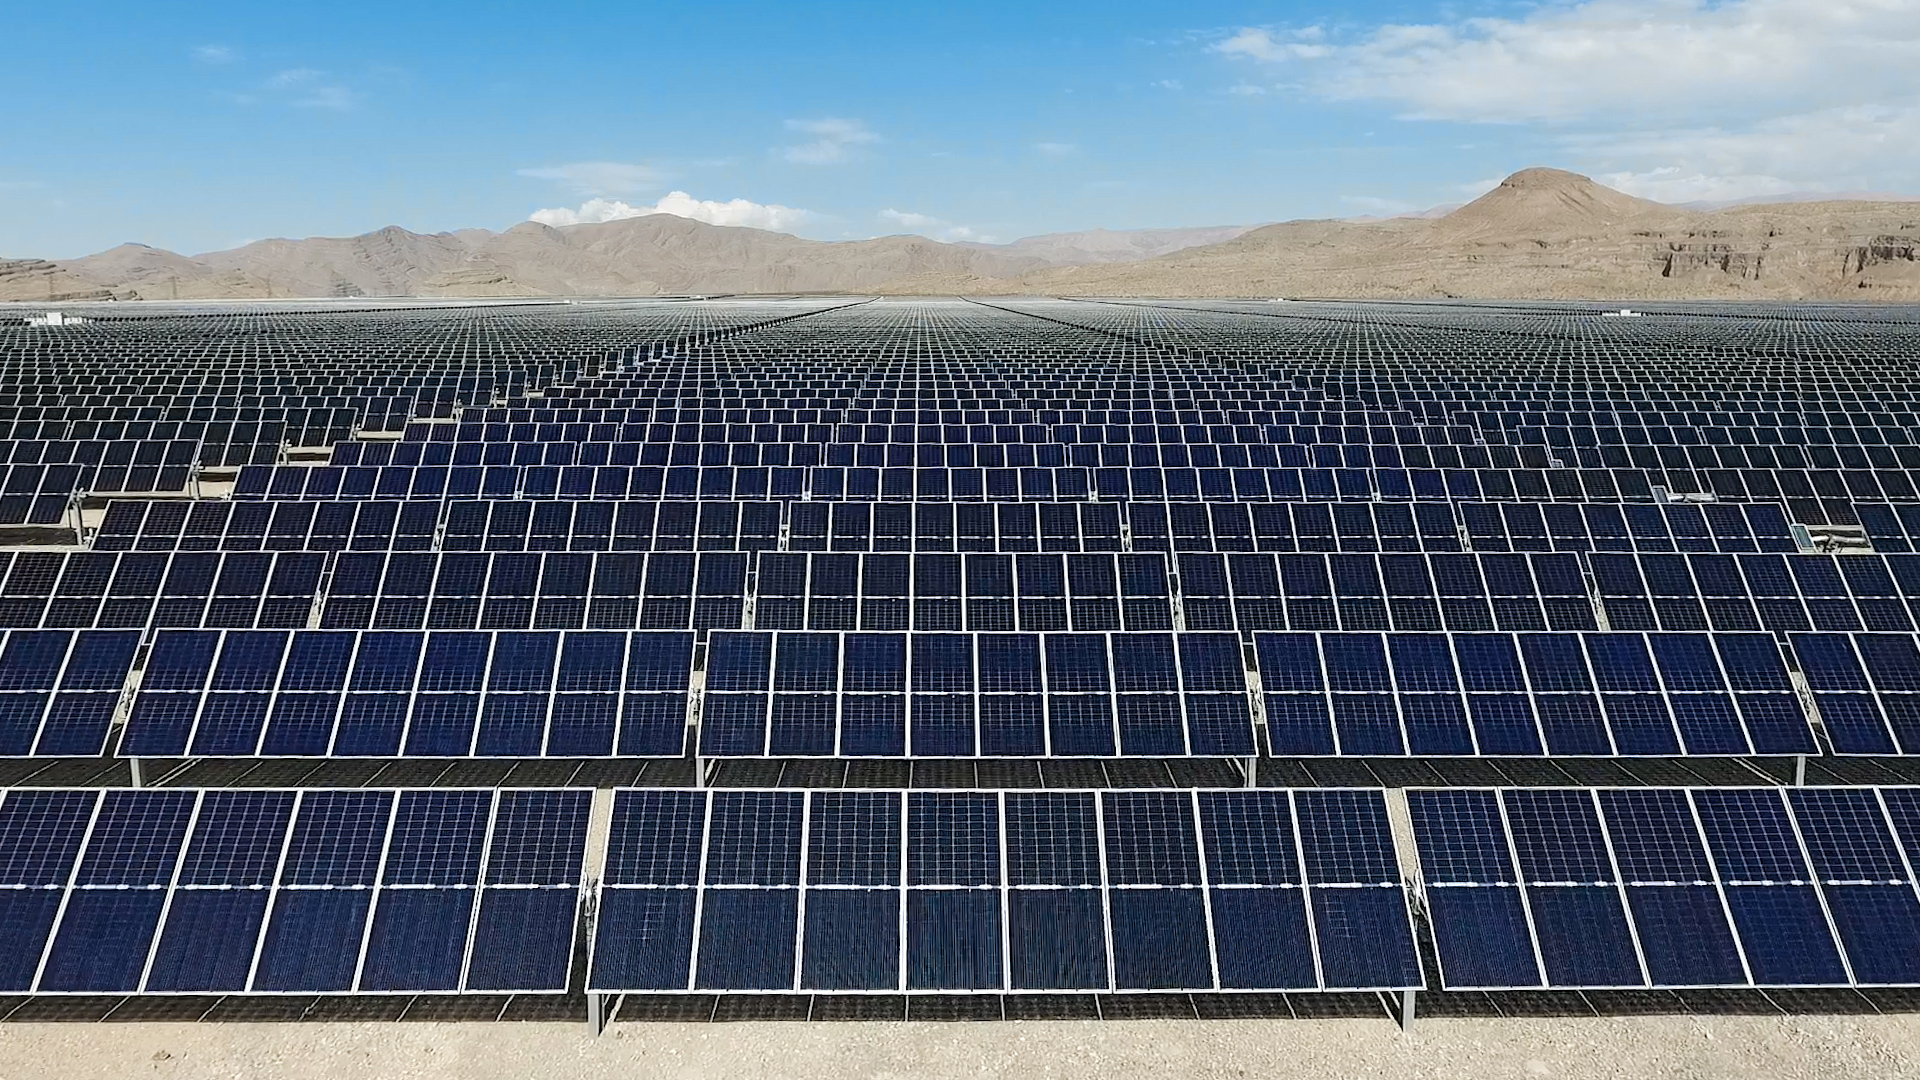 MGM Resorts has launched its 100-megawatt solar array, the hospitality industry's largest directly sourced renewable electricity project worldwide.